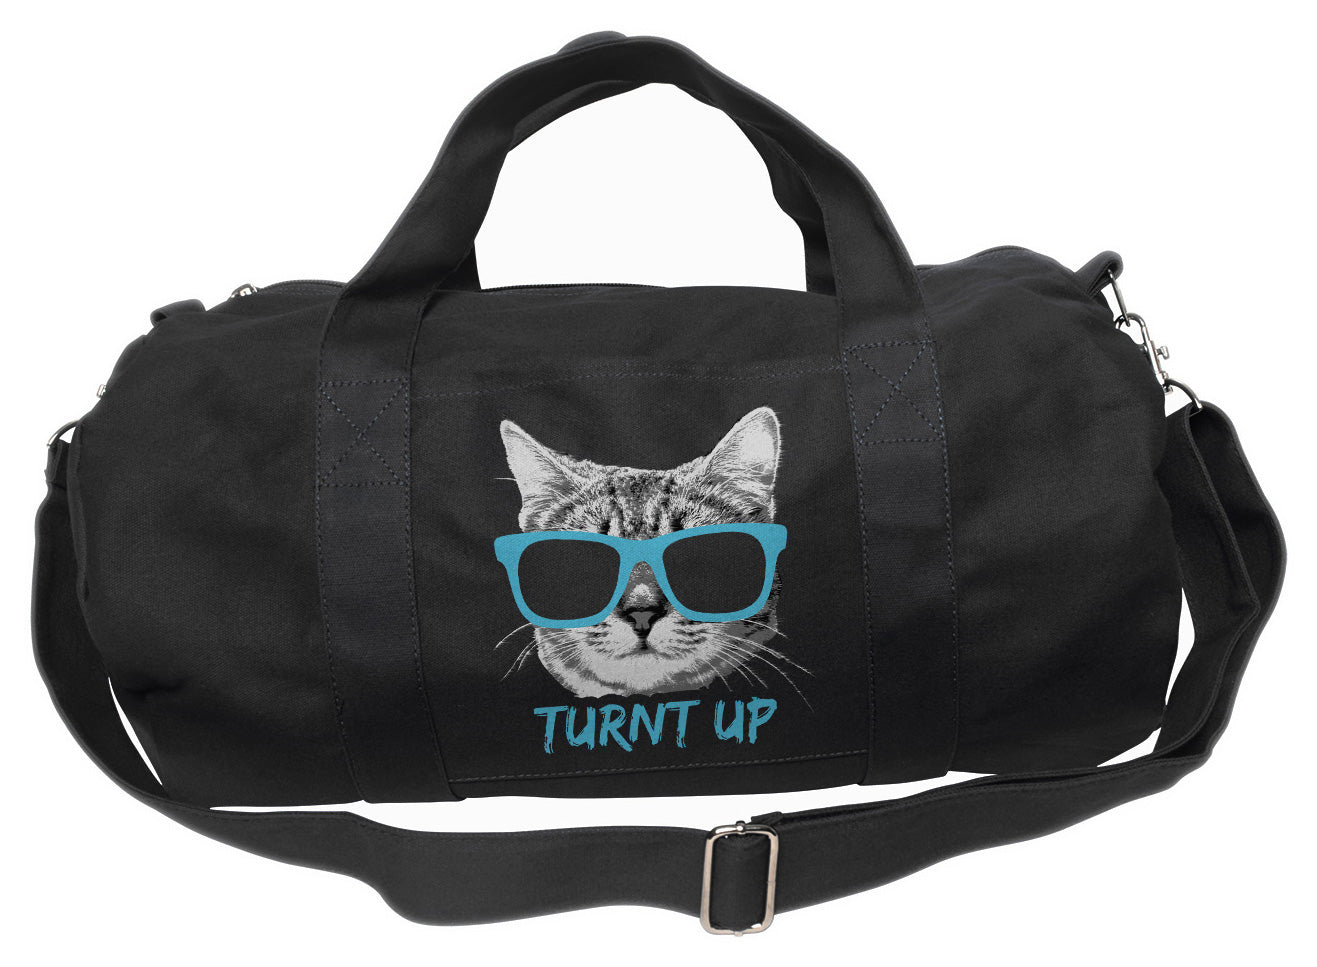 Turnt Up Kitty Duffel Bag